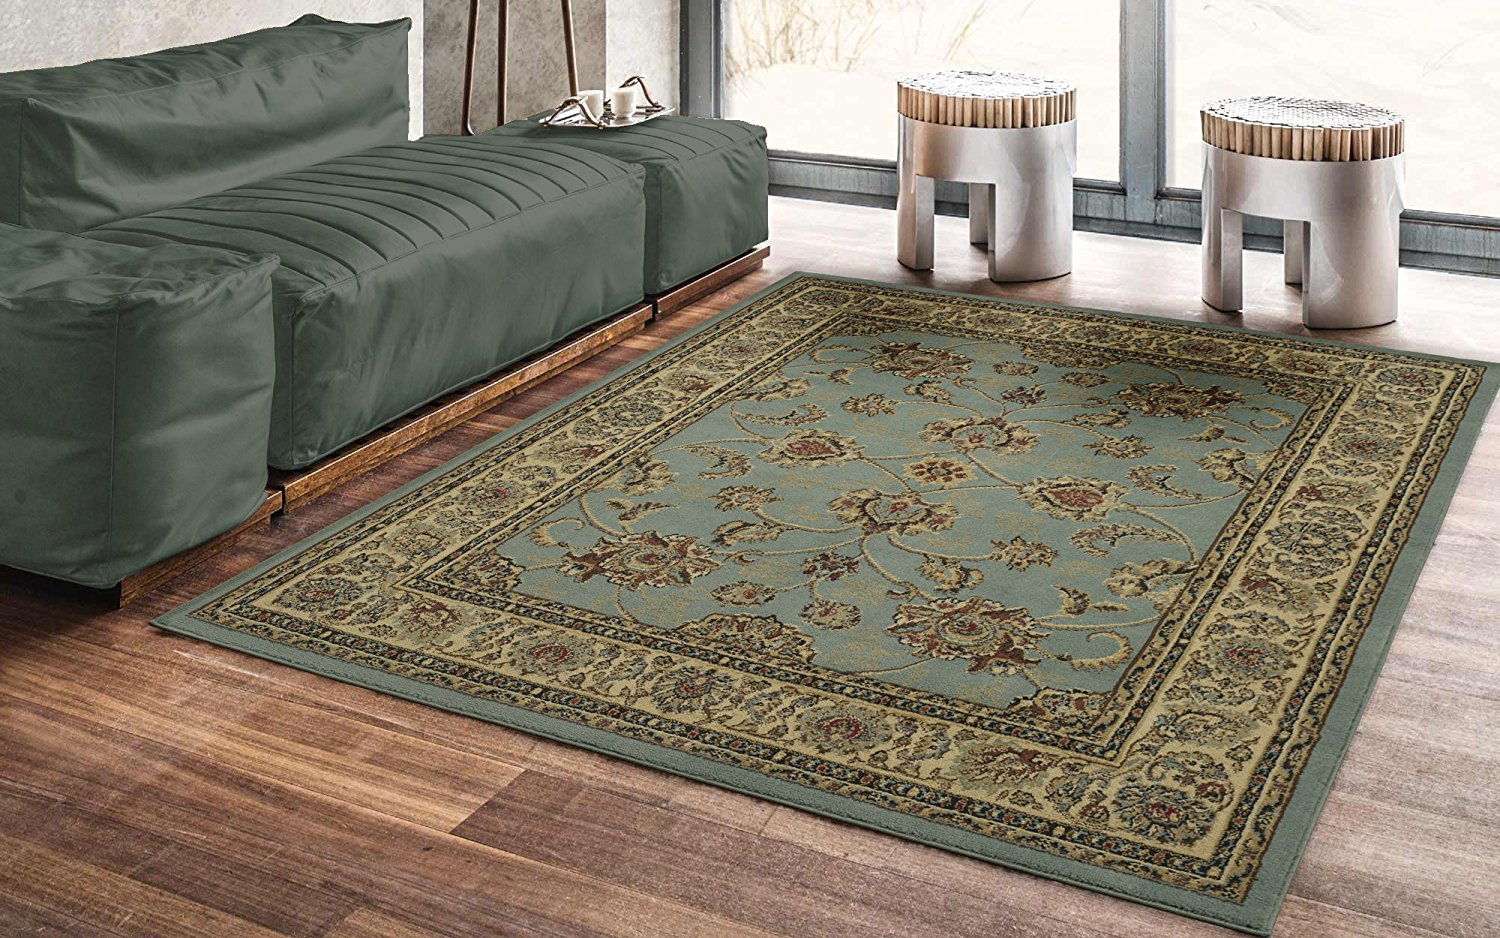 Traditional Sage Green Floral Area Rug Modern Rugs And Decor